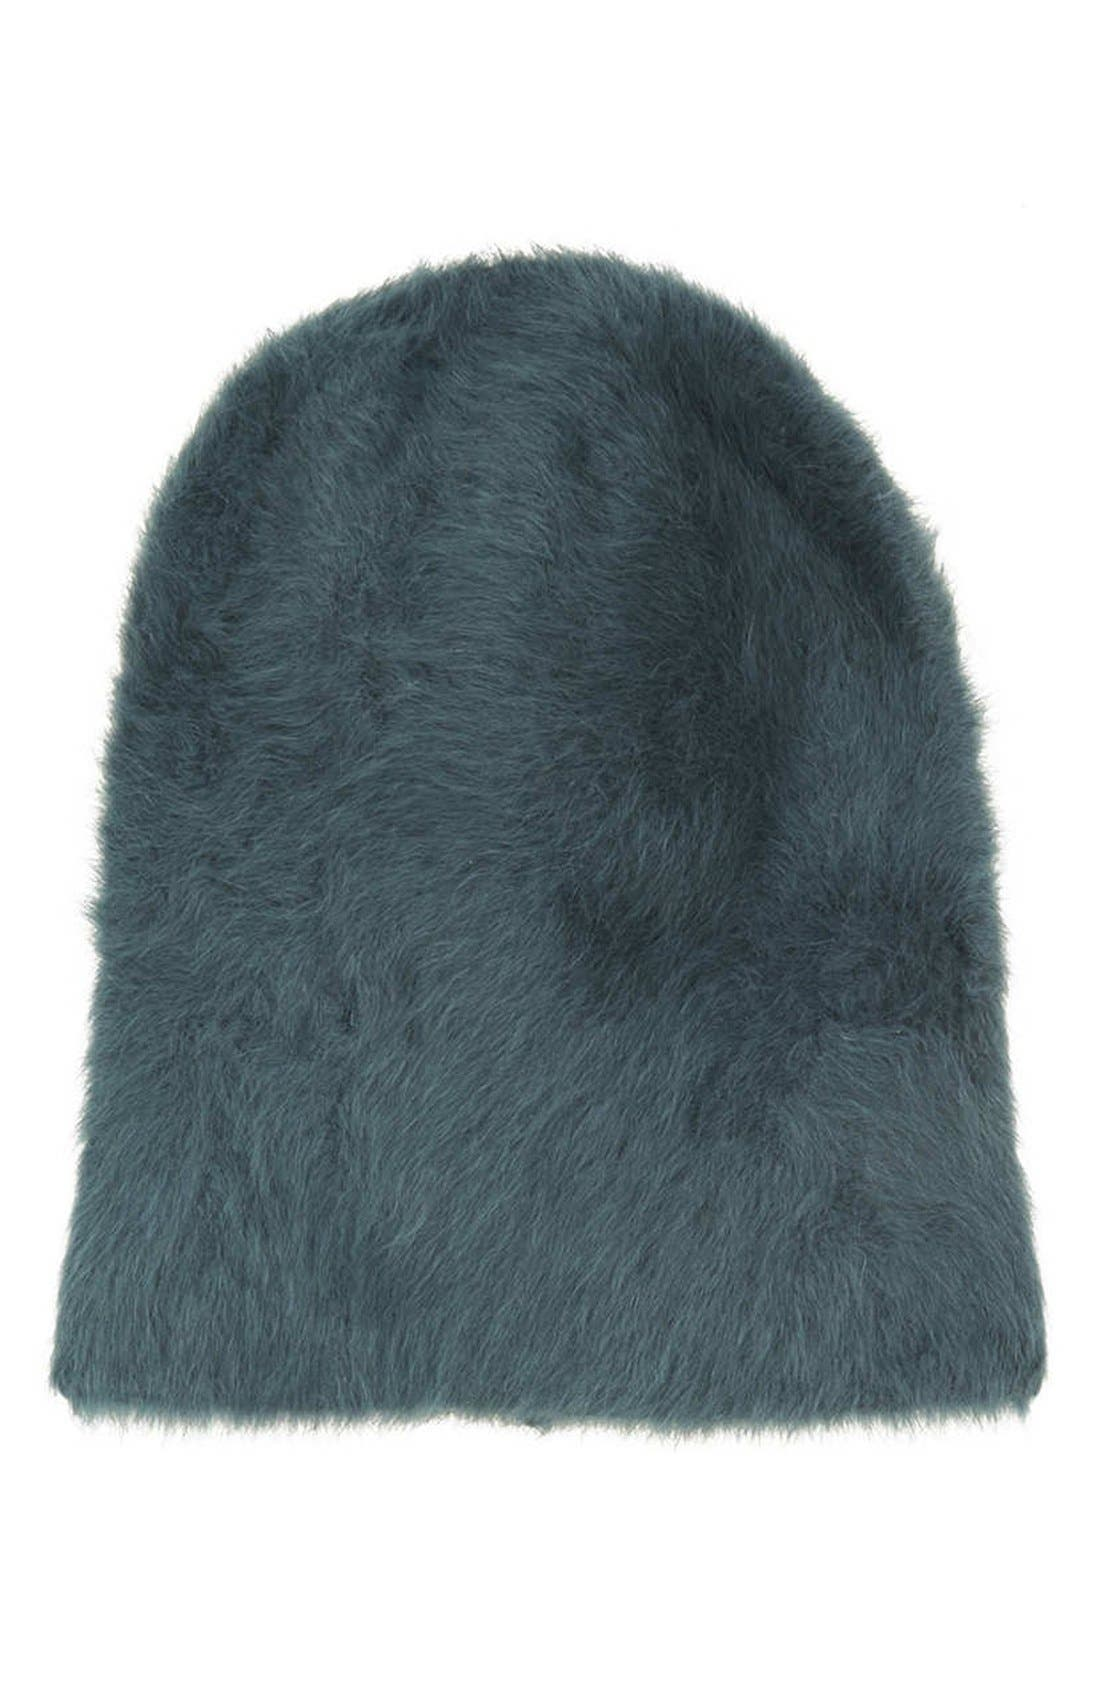 Alternate Image 1 Selected - Topshop Angora Beanie